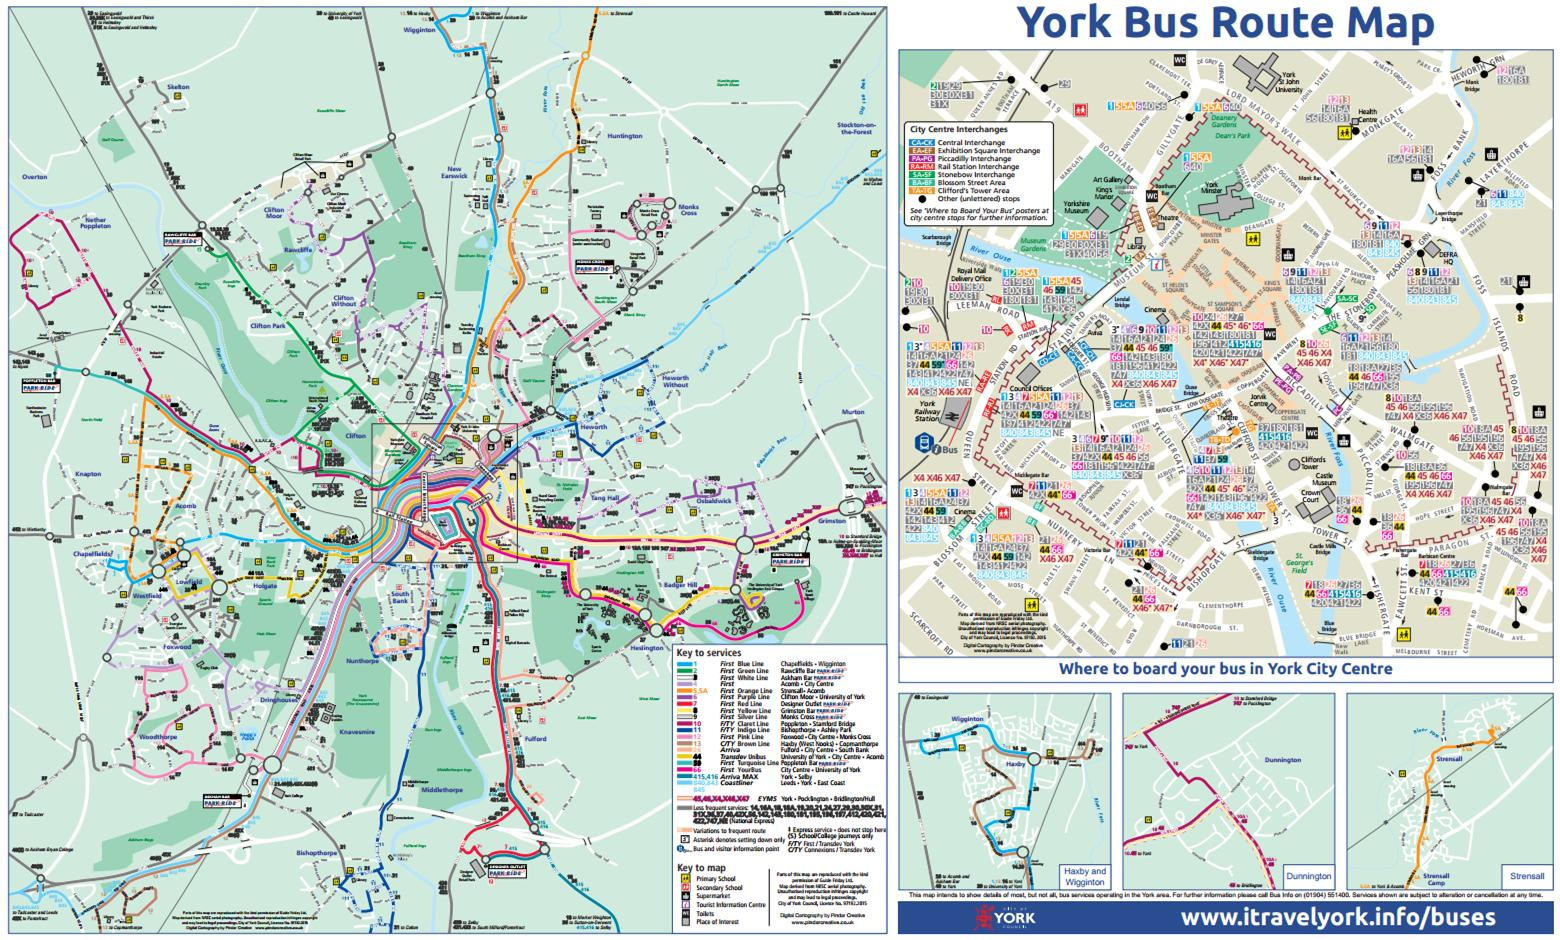 Revised York bus route map available to download Cllr Ann Reid